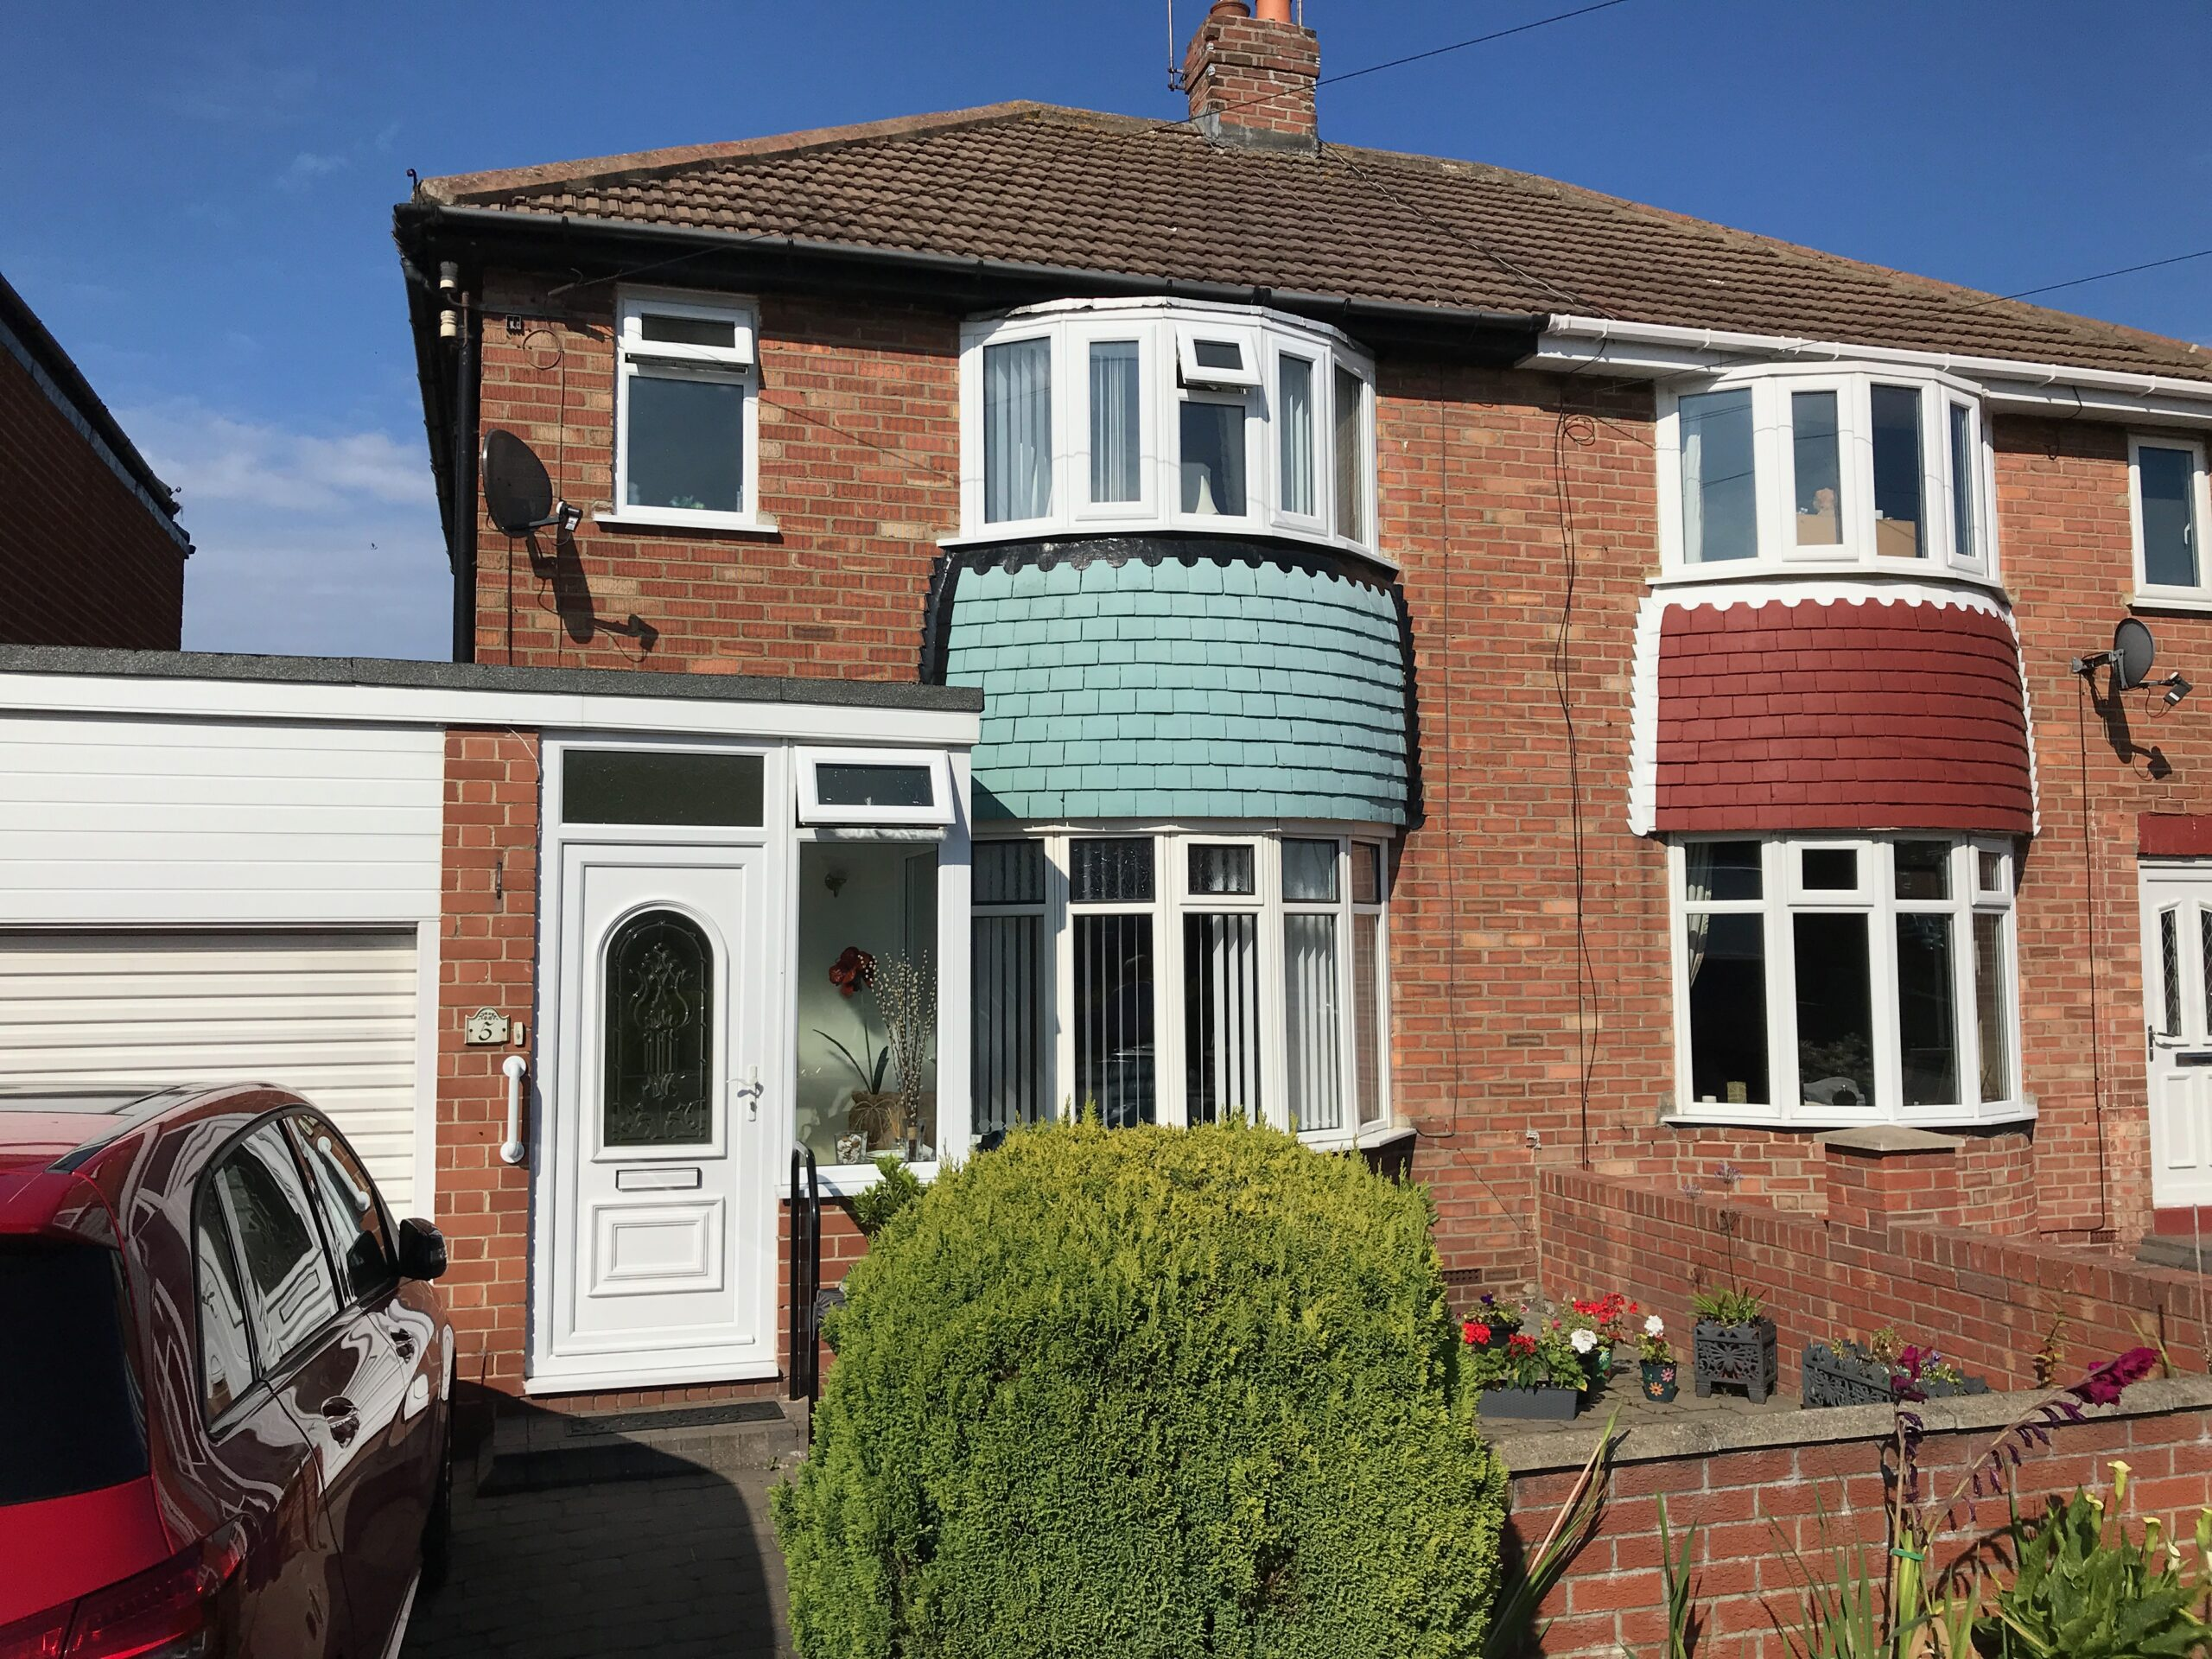 Home of Jim and Dorothy Otterson, Fulwell, Sunderland